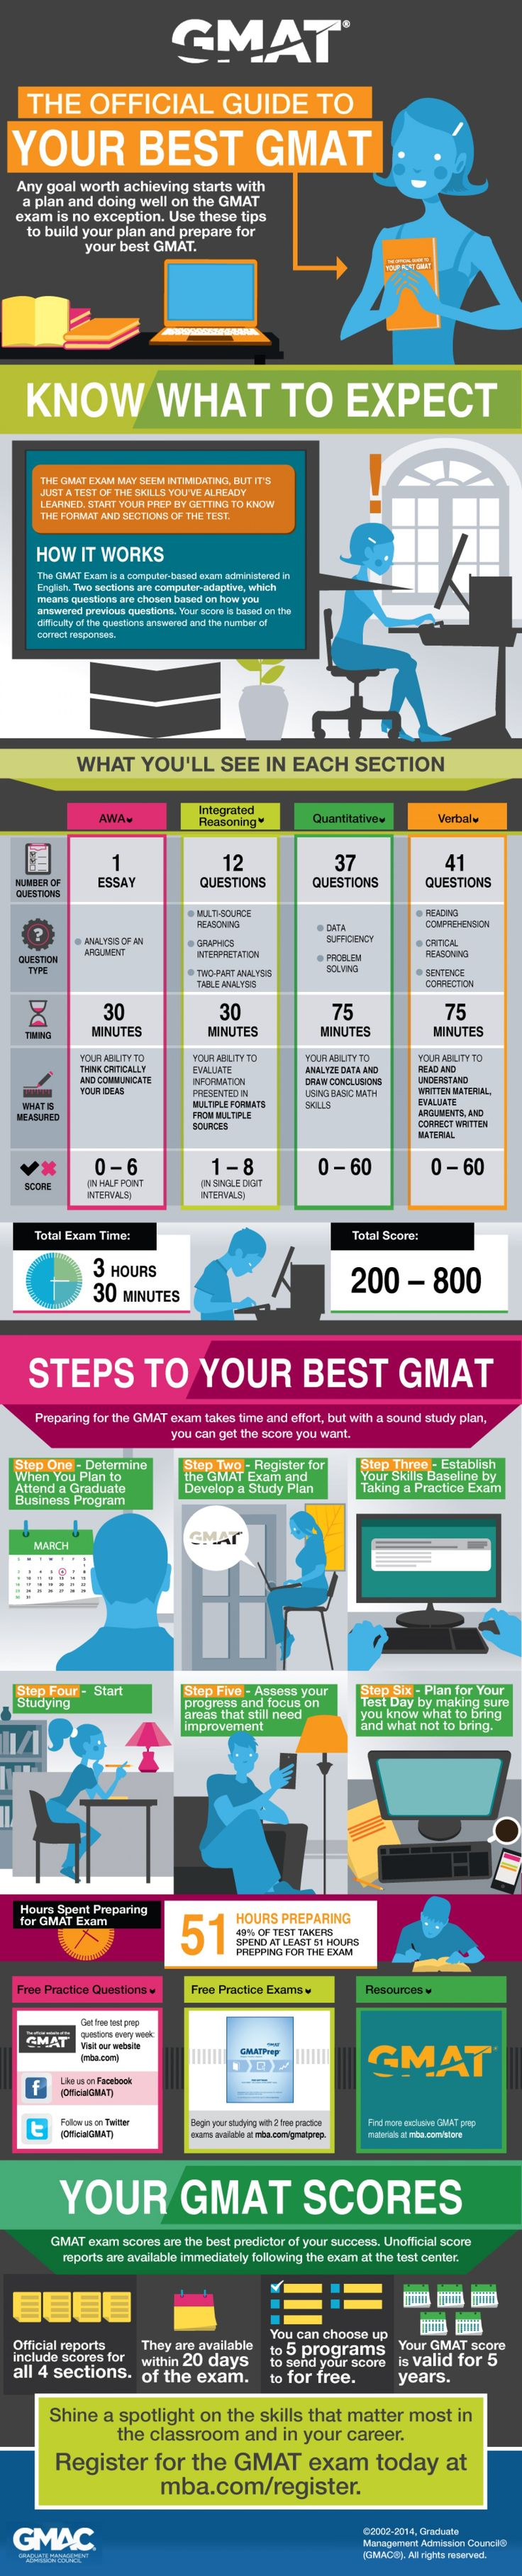 The official guide to your best gmat exam infographic